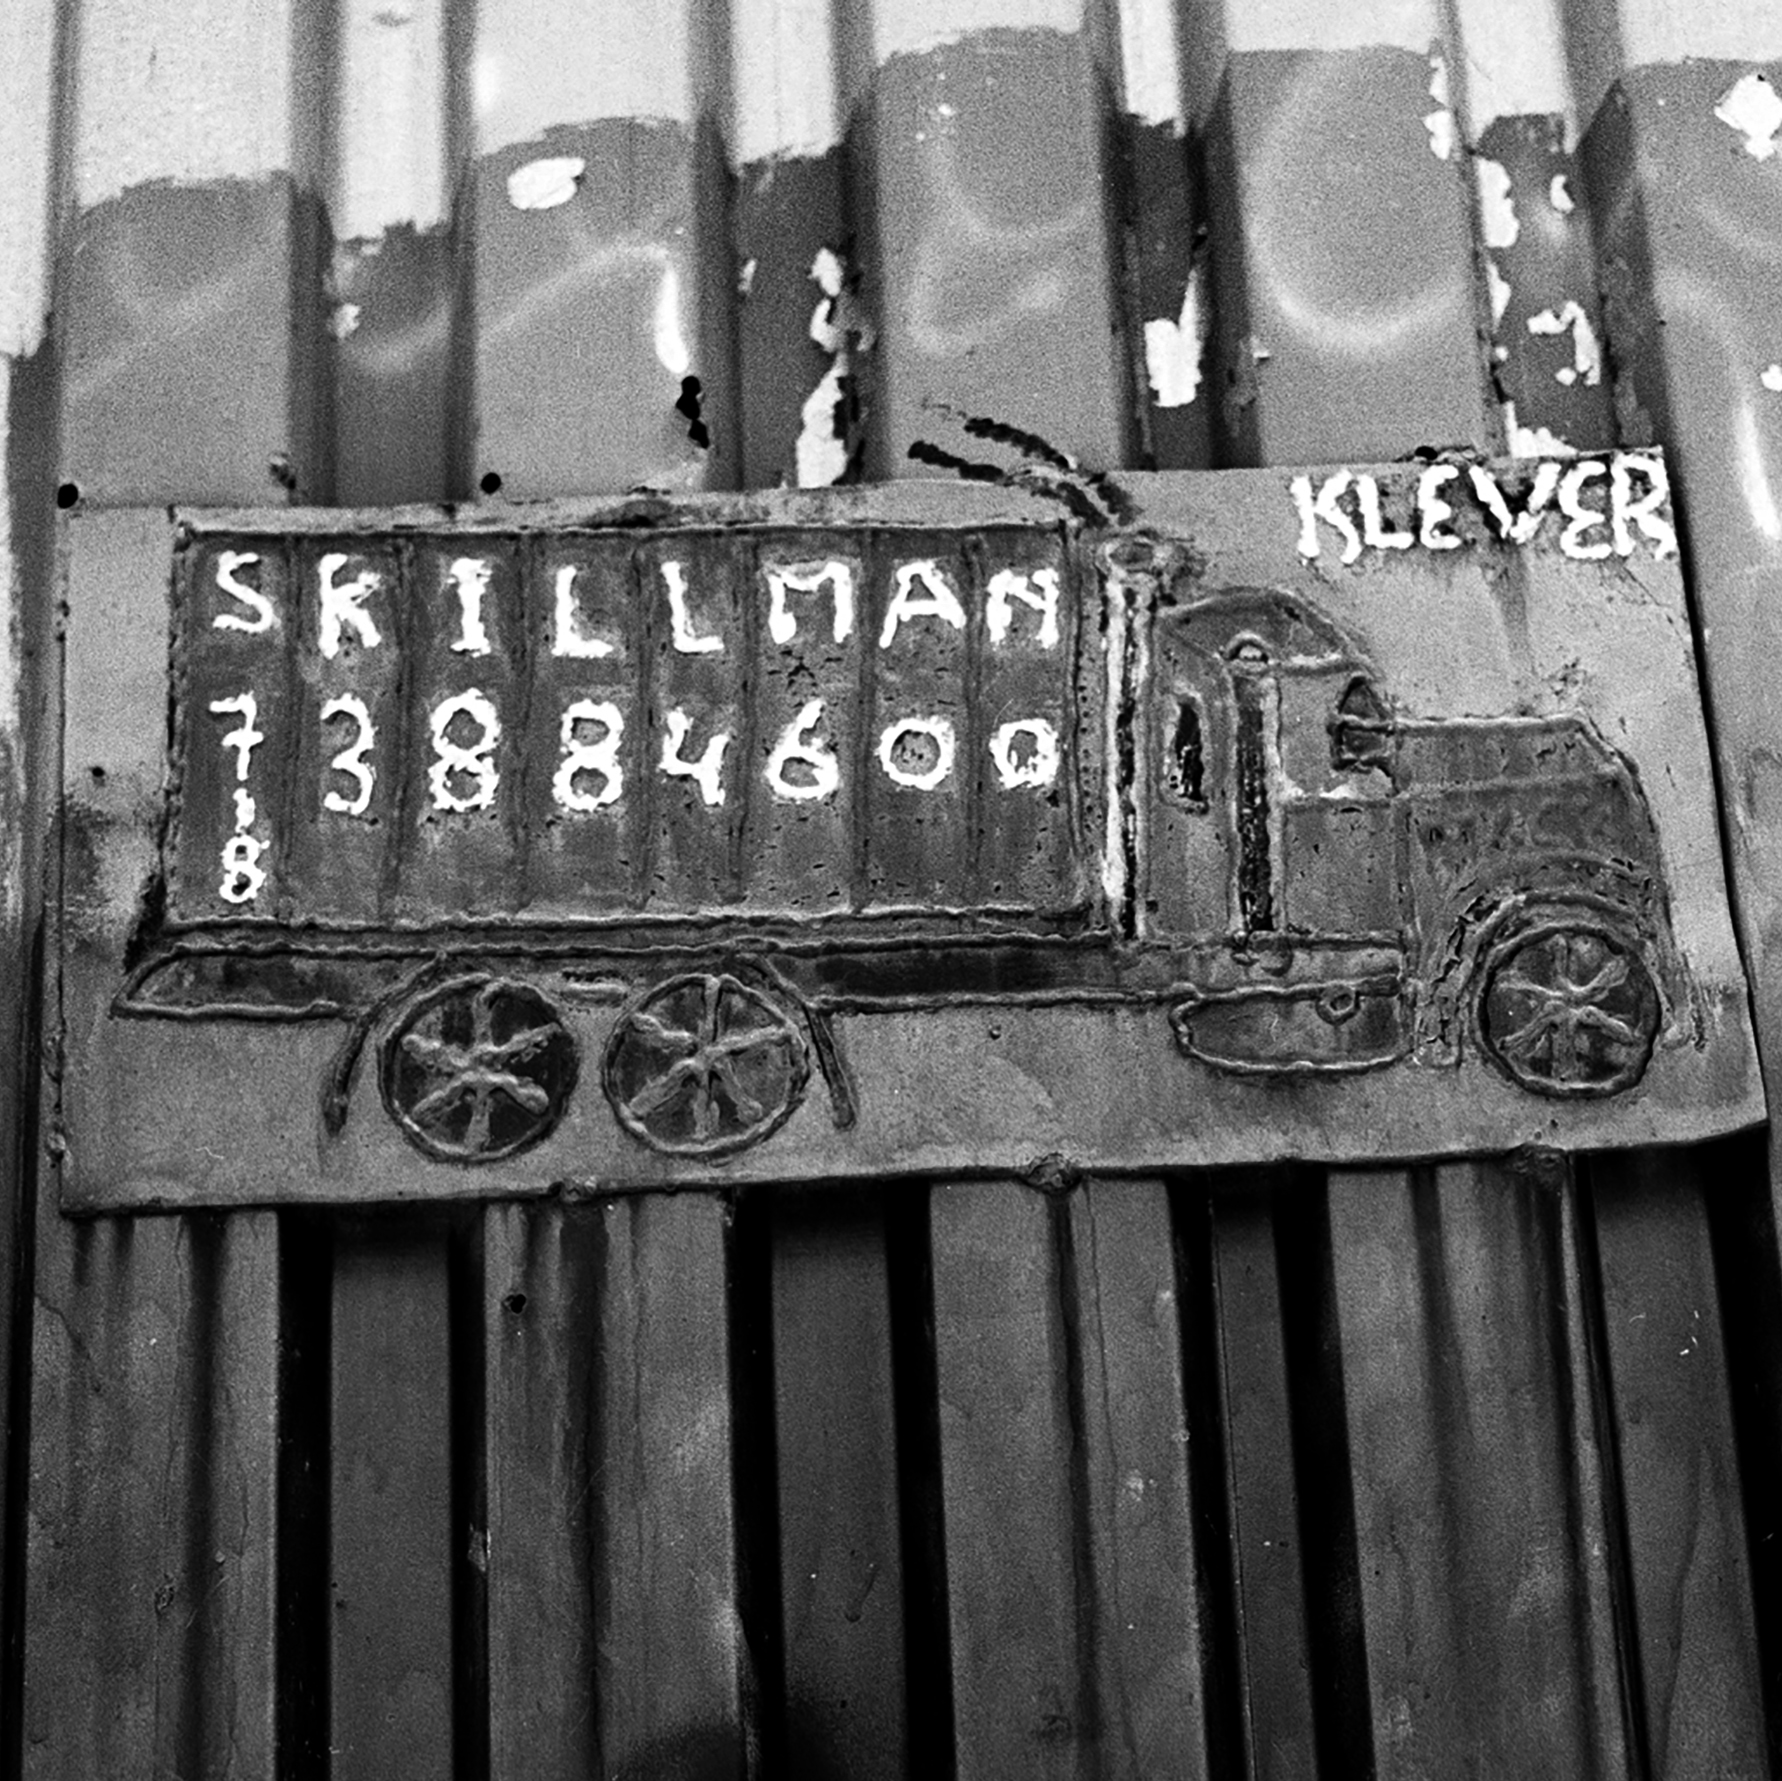 A handmade, welded sign hangs outside of Skillman Contracting on Skillman Avenue in Williamsburg, Brooklyn, New York. A makeshift memorial for Thomas R. Dolphin was put up near the intersection of Meeker Avenue and Gardner Avenue in Greenpoint, Brooklyn, N.Y. (Photo by Dakota Santiago/GroundTruth)